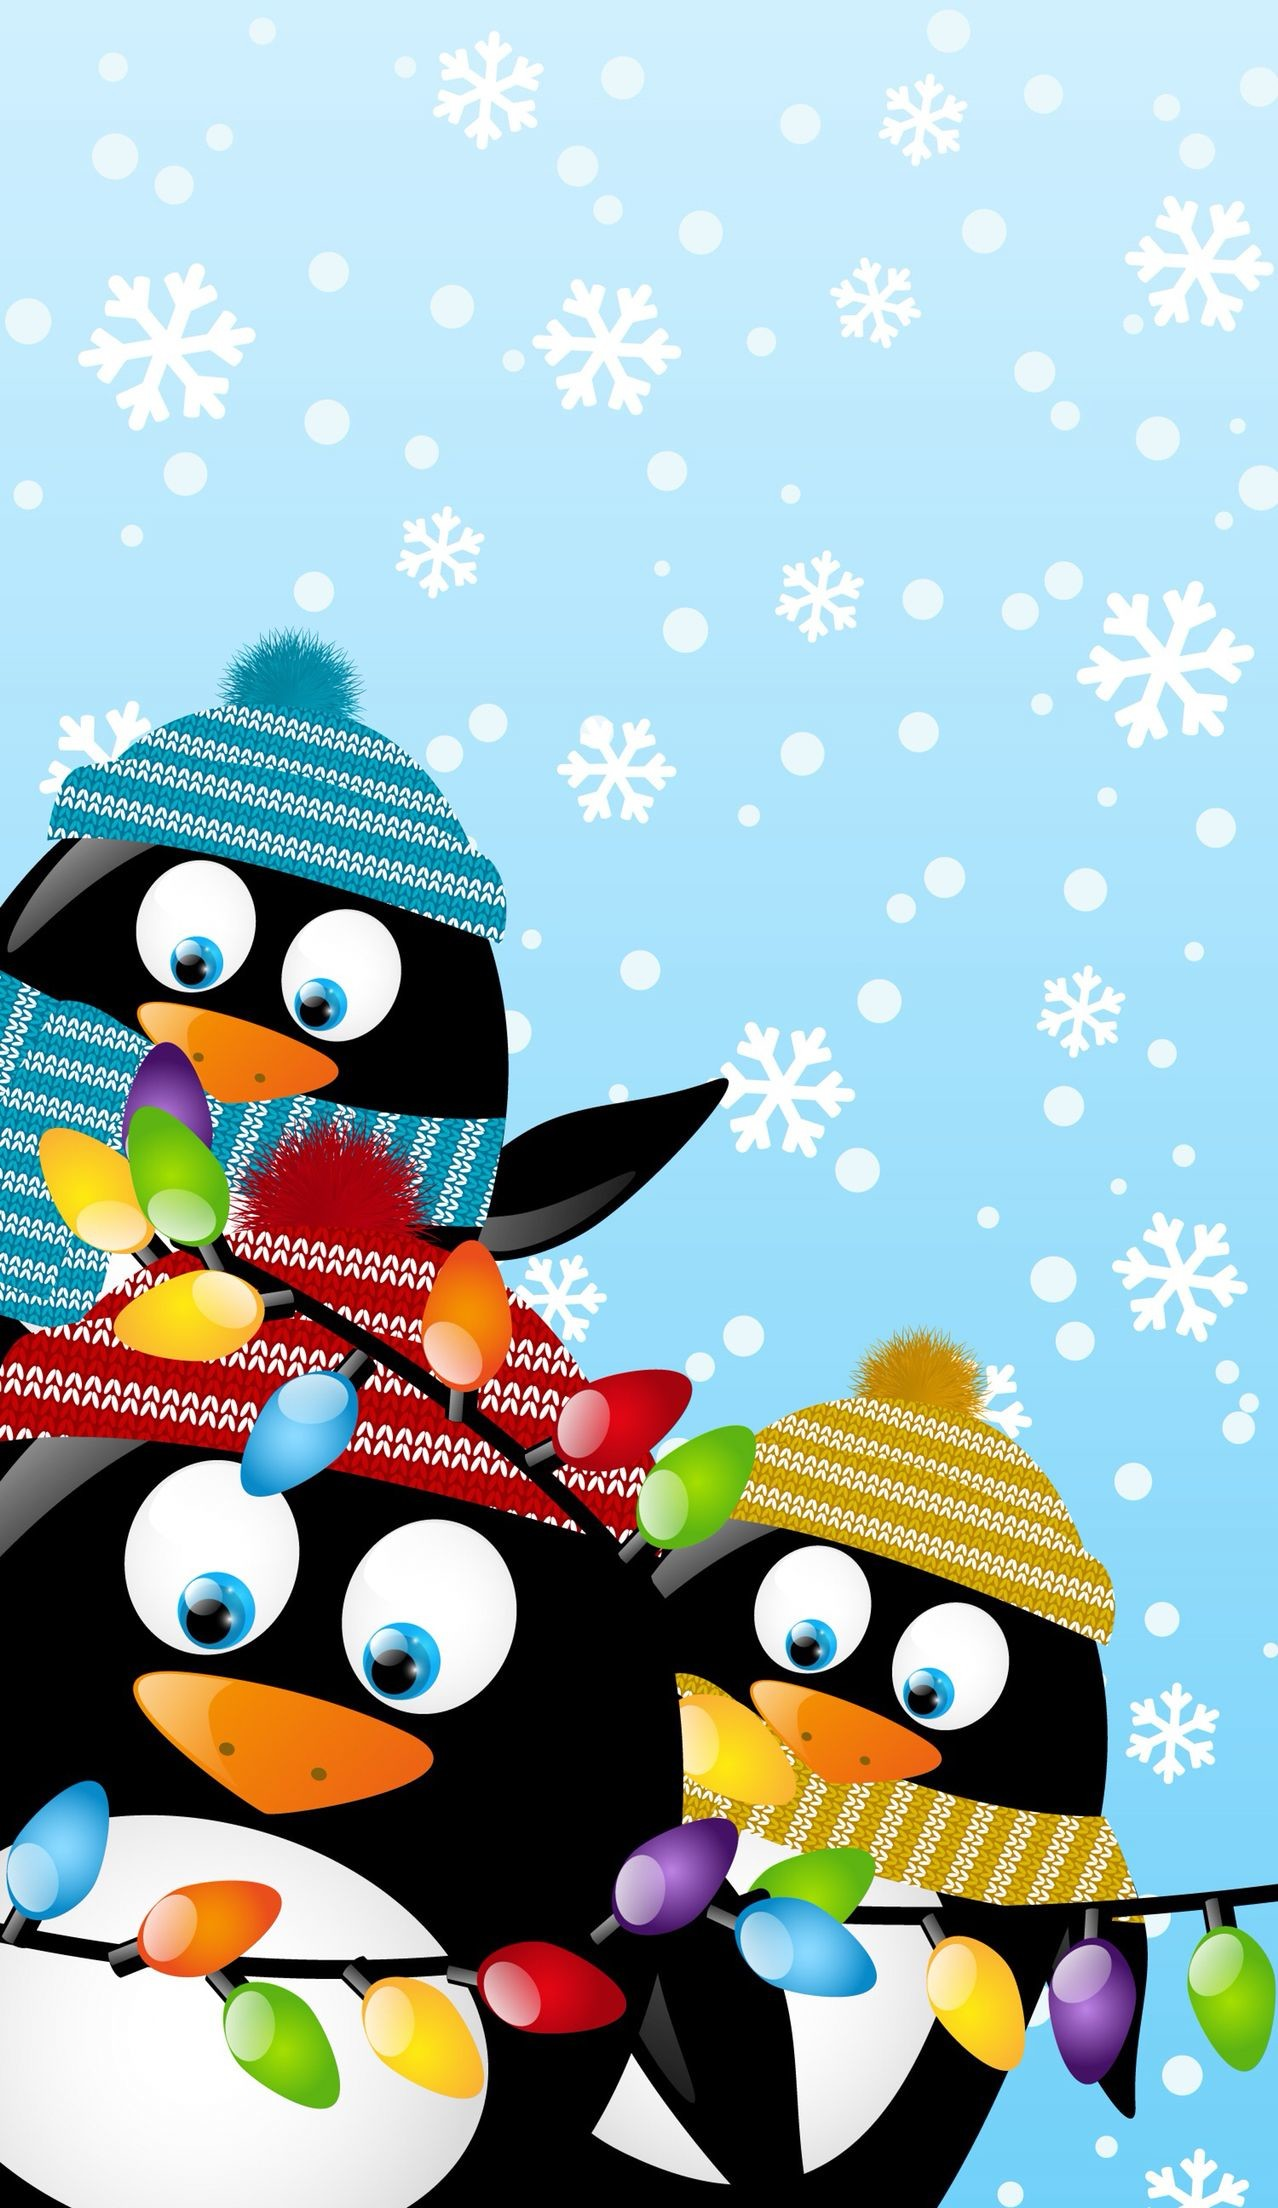 Res: 1278x2208, Merry Christmas Wallpapers · Holiday Wallpaper · Save and set